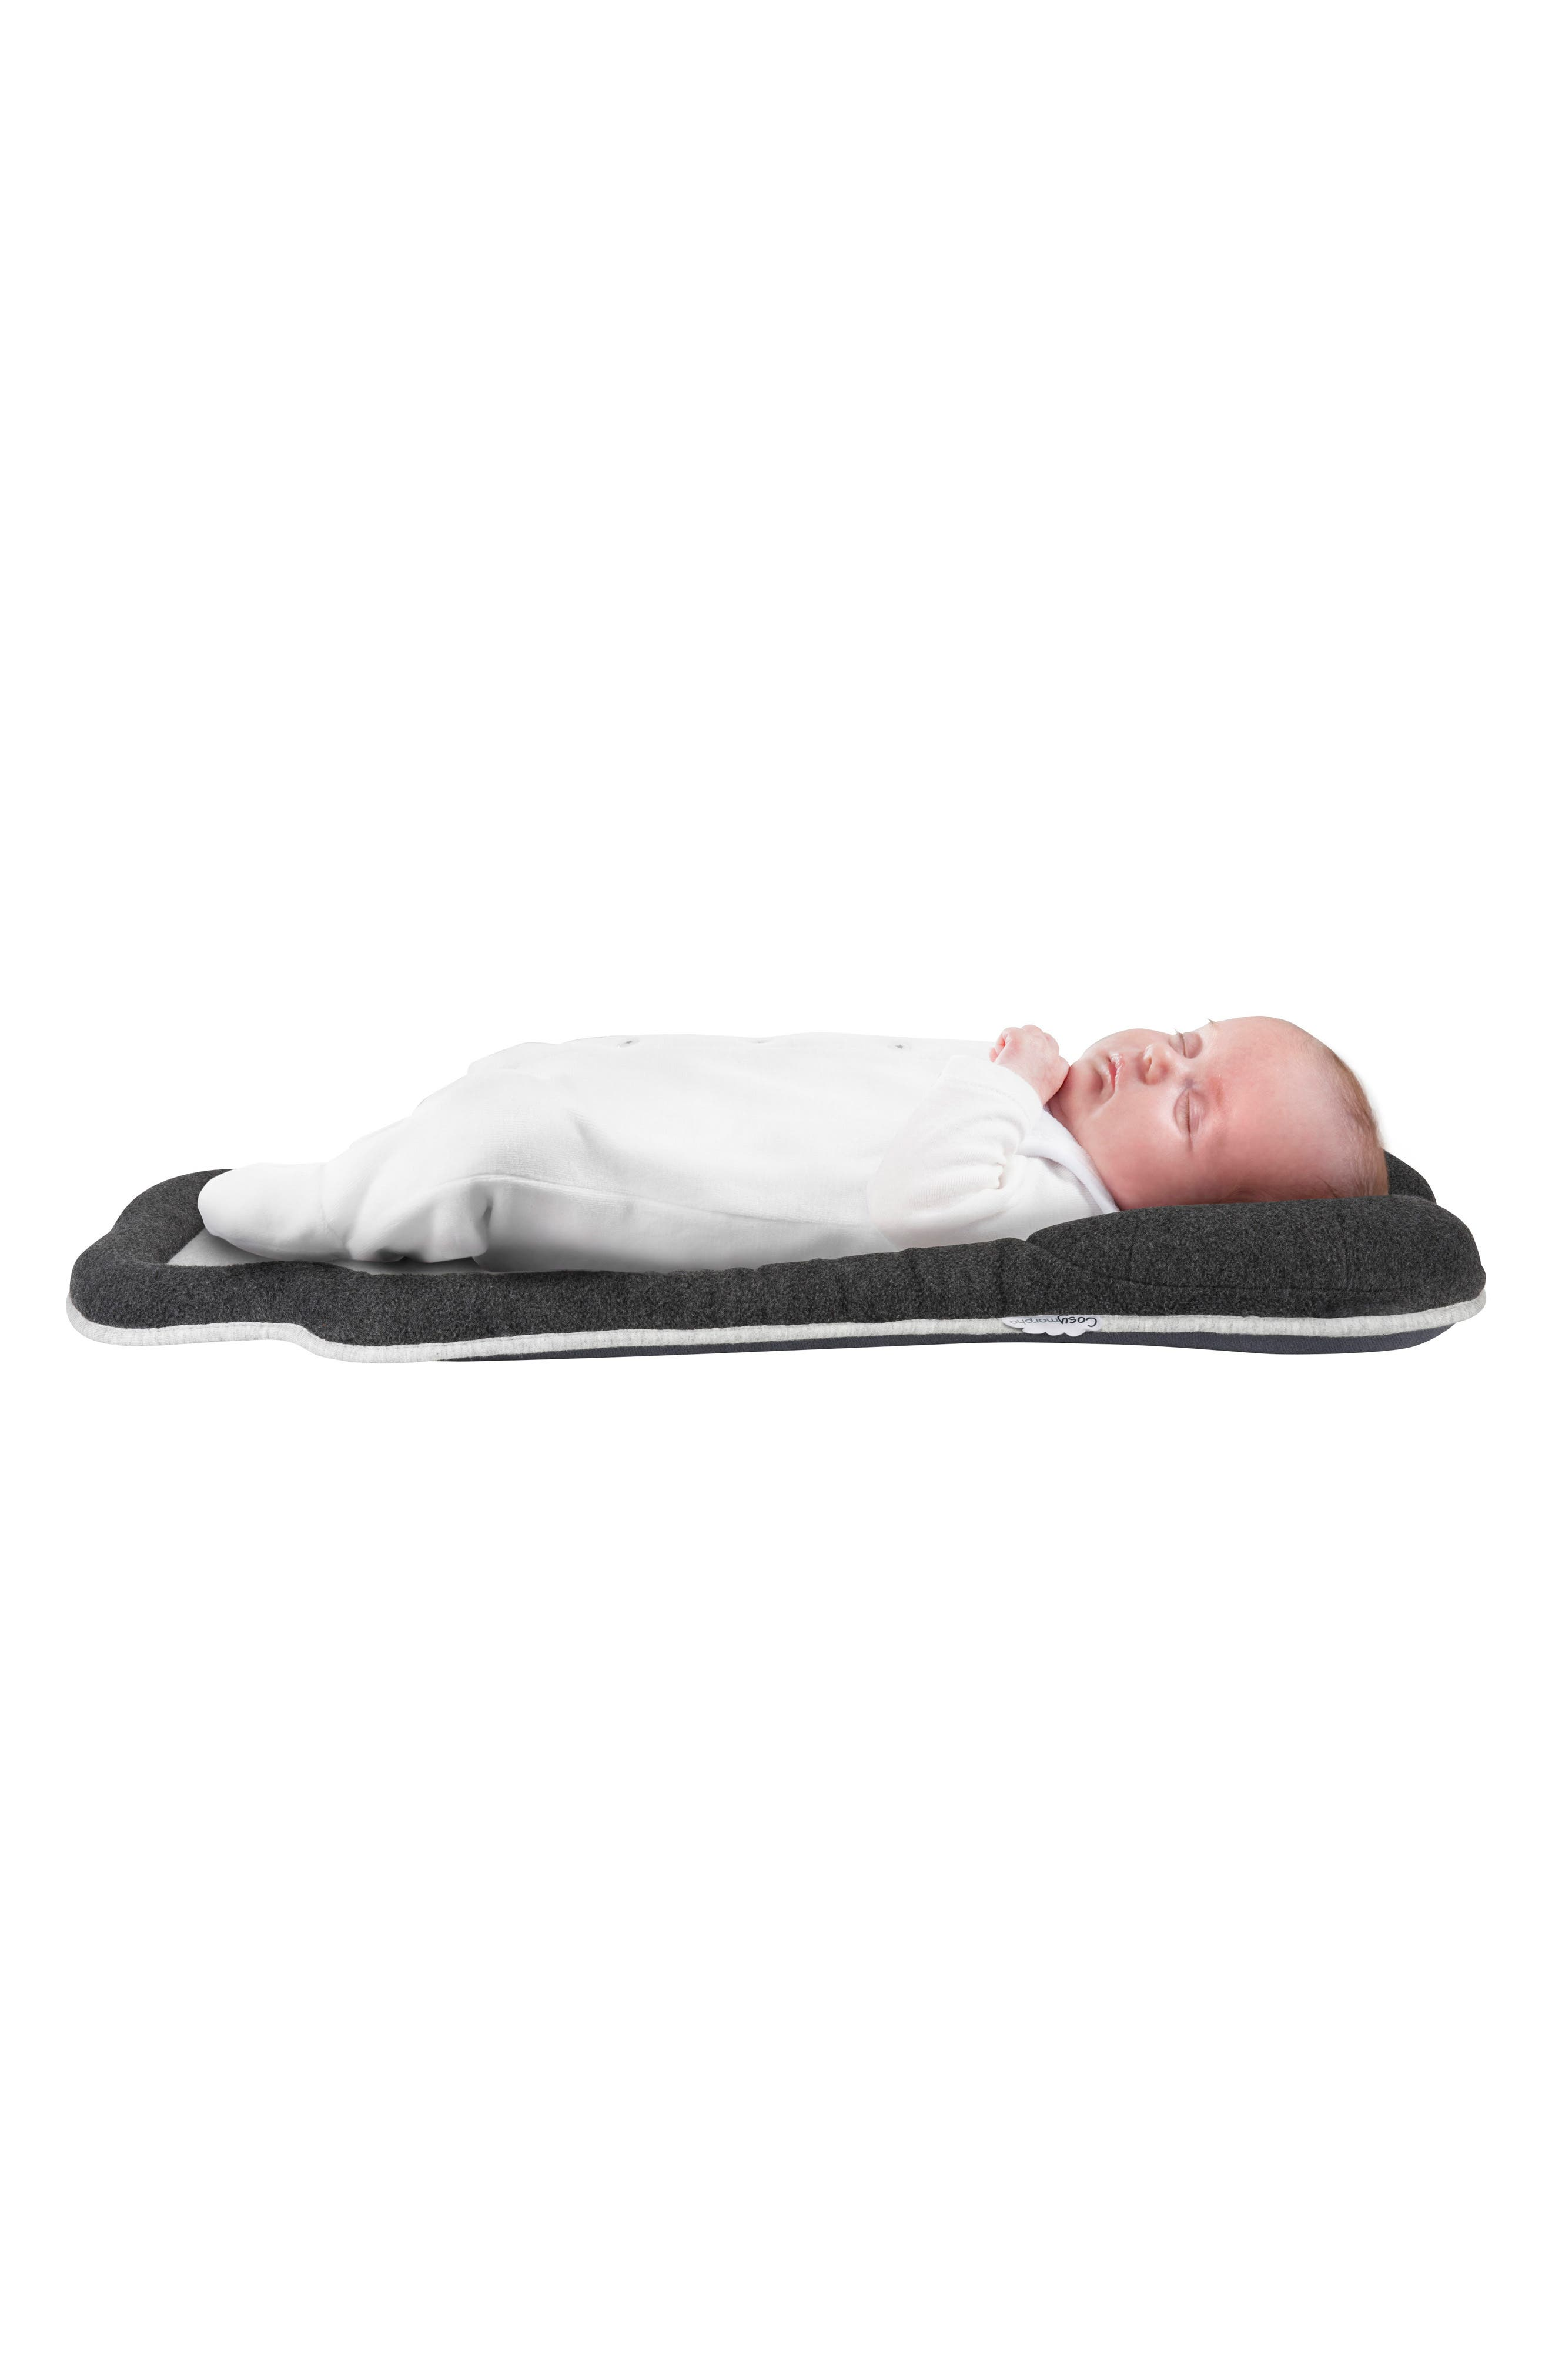 Cosymorpho Head & Body Support Pillow,                             Alternate thumbnail 3, color,                             020